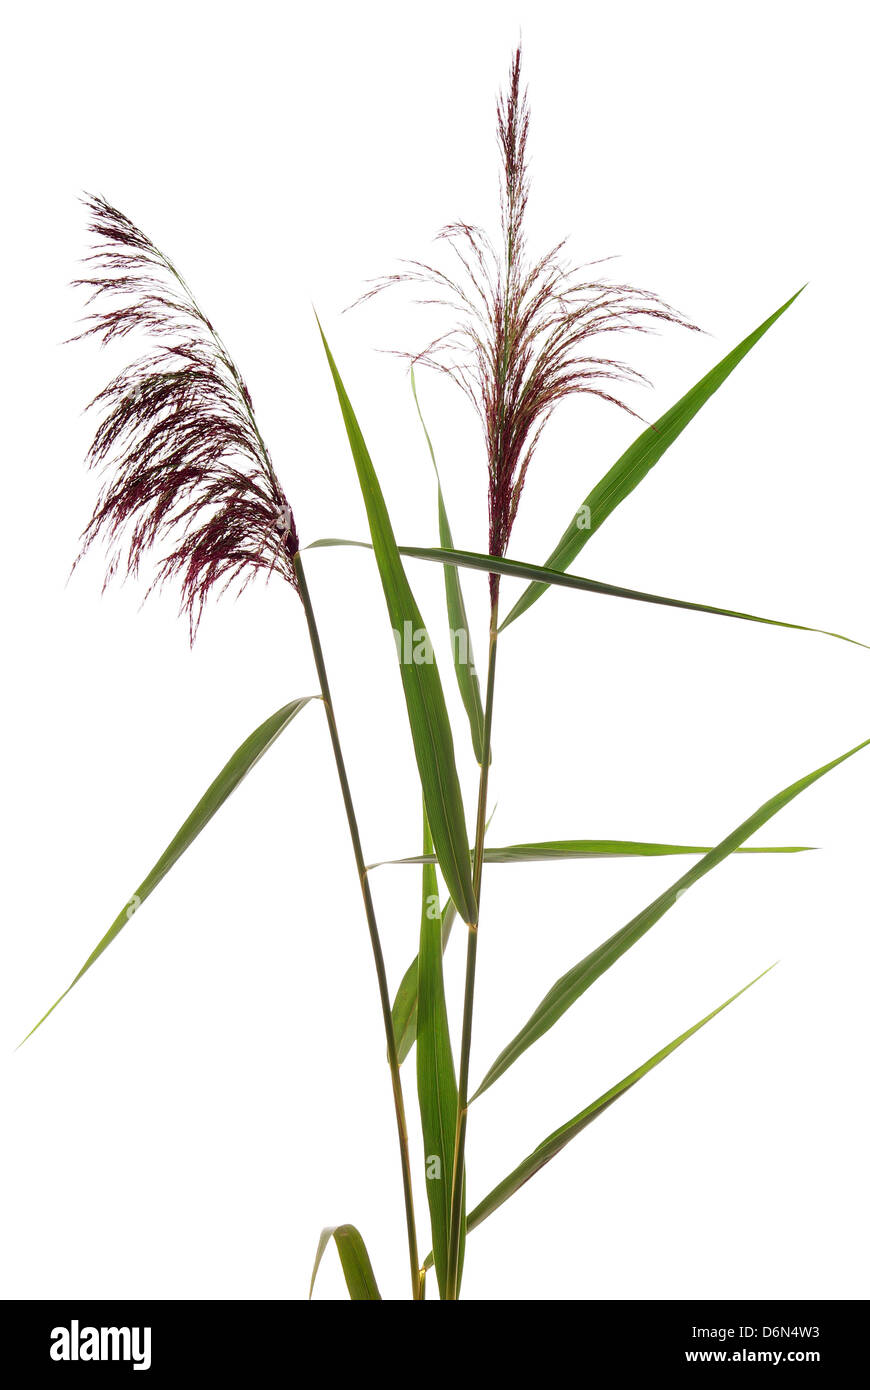 high reed grass on white background - Stock Image